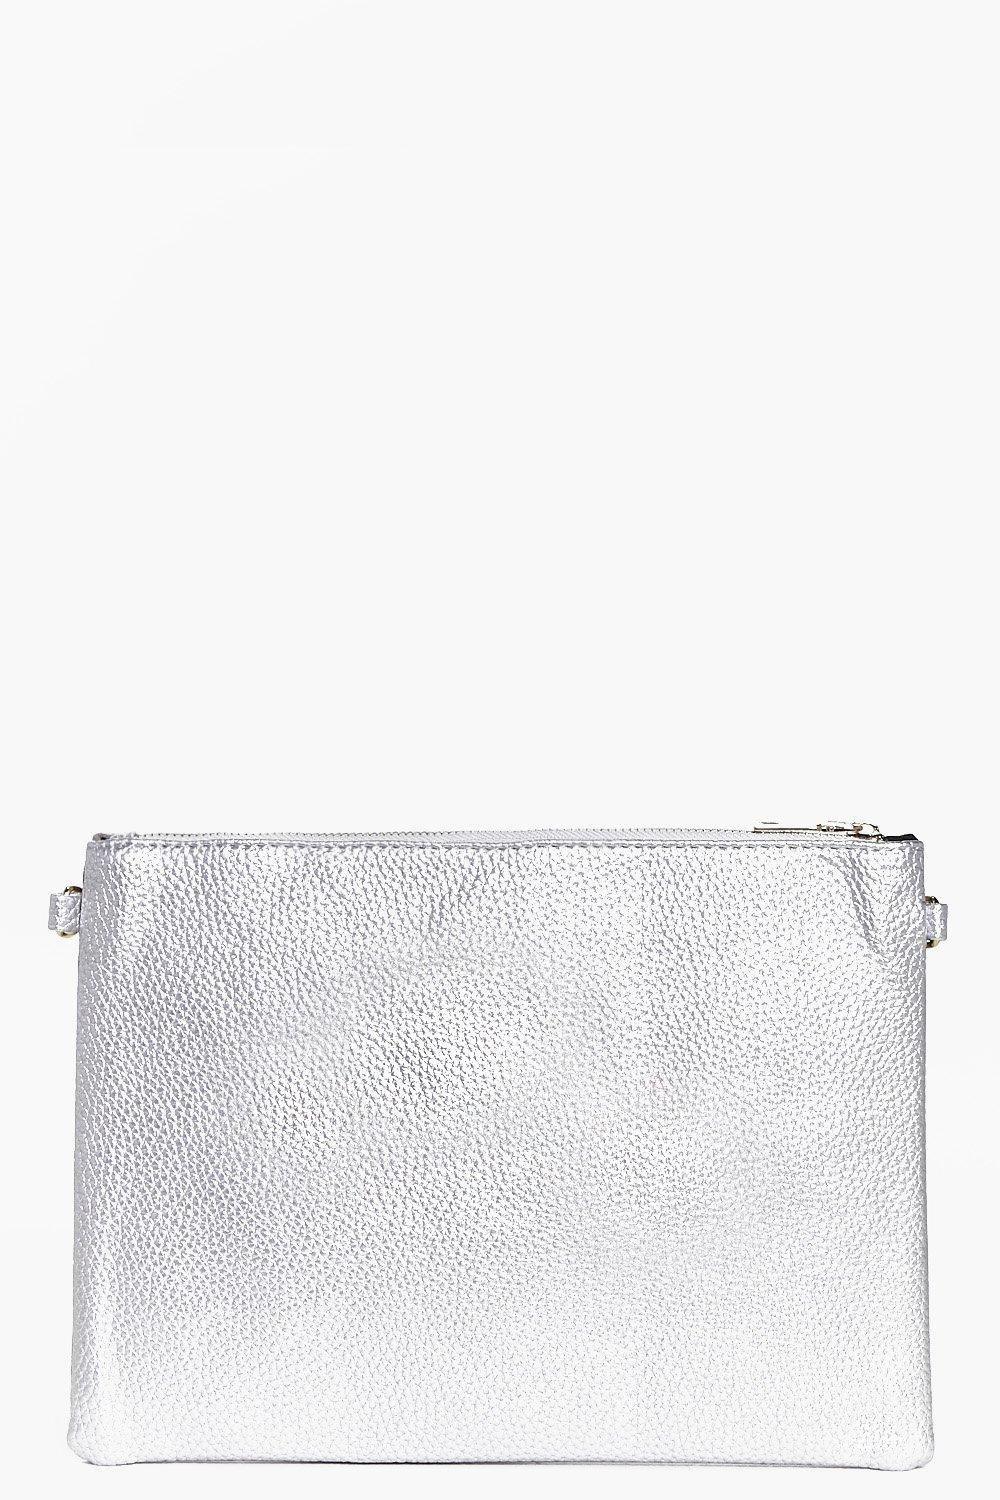 Tia Reversible Suedette and Metallic Clutch